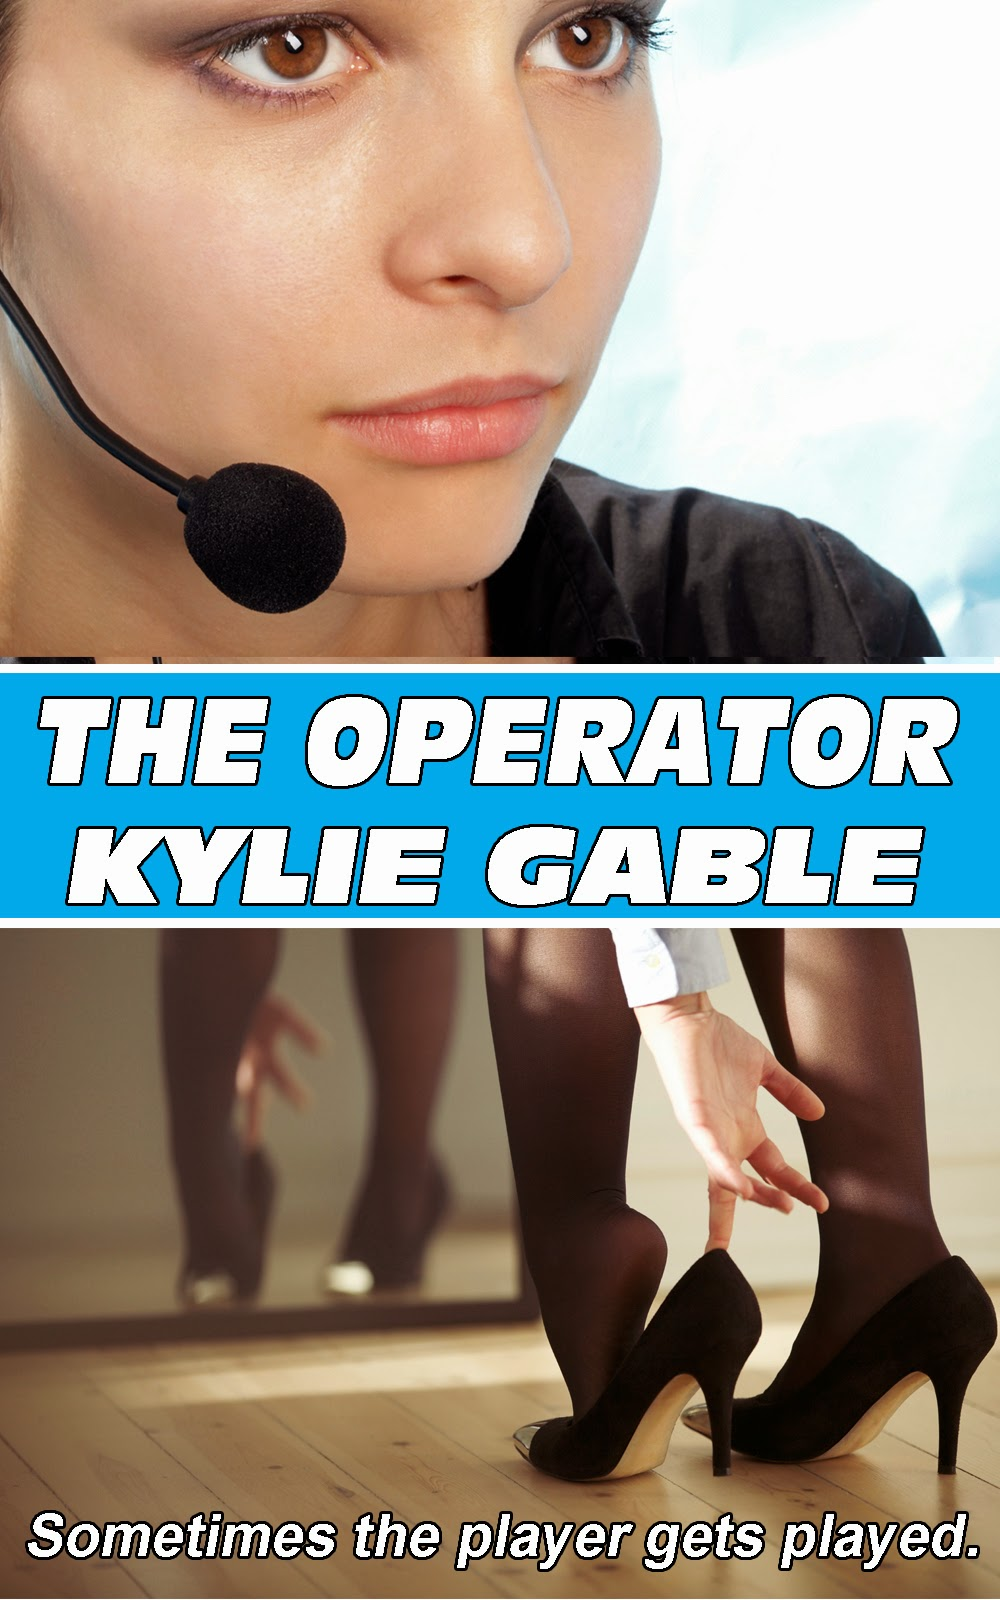 http://www.amazon.com/The-Operator-Kylie-Gable-ebook/dp/B00OWFVT2C/ref=zg_bs_7620217011_5